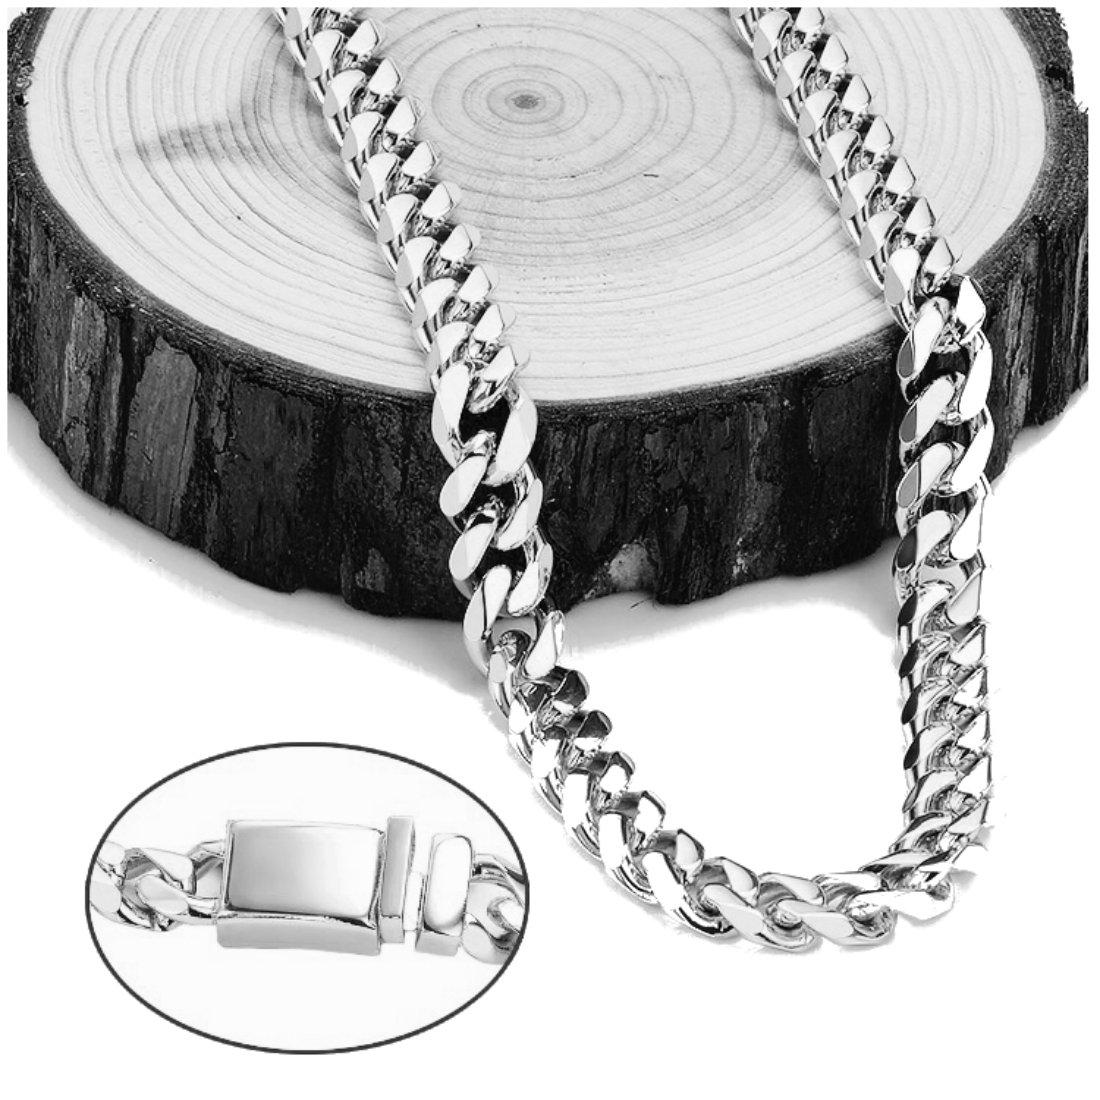 18K White Gold Diamond Cut Cuban Chain Necklace 9MM Miami Link With Warranty of a LifeTime USA Made!(24)